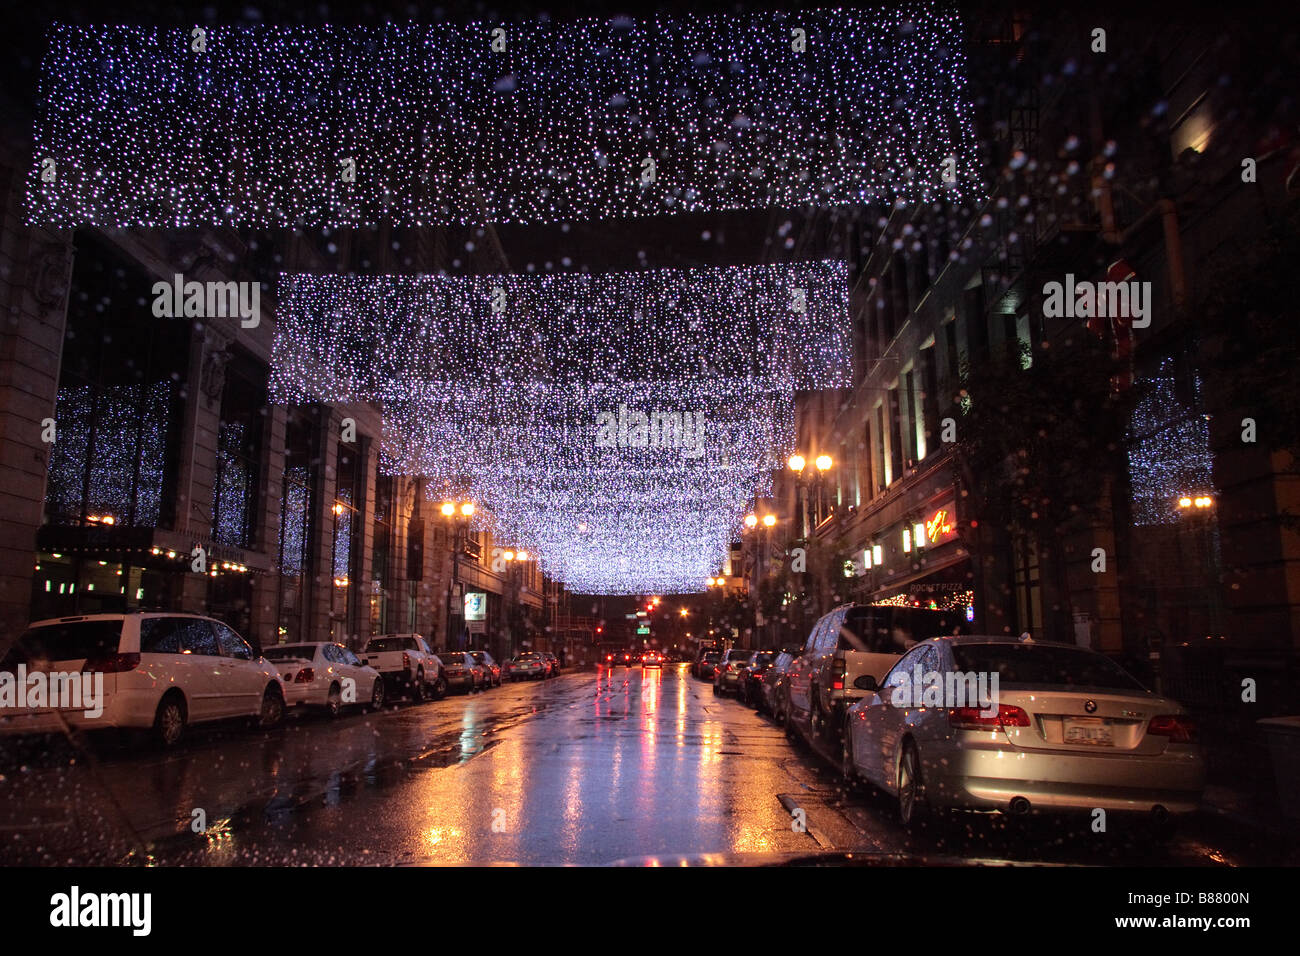 4th Street Los Angeles with Christmas light decorations on rainy ...